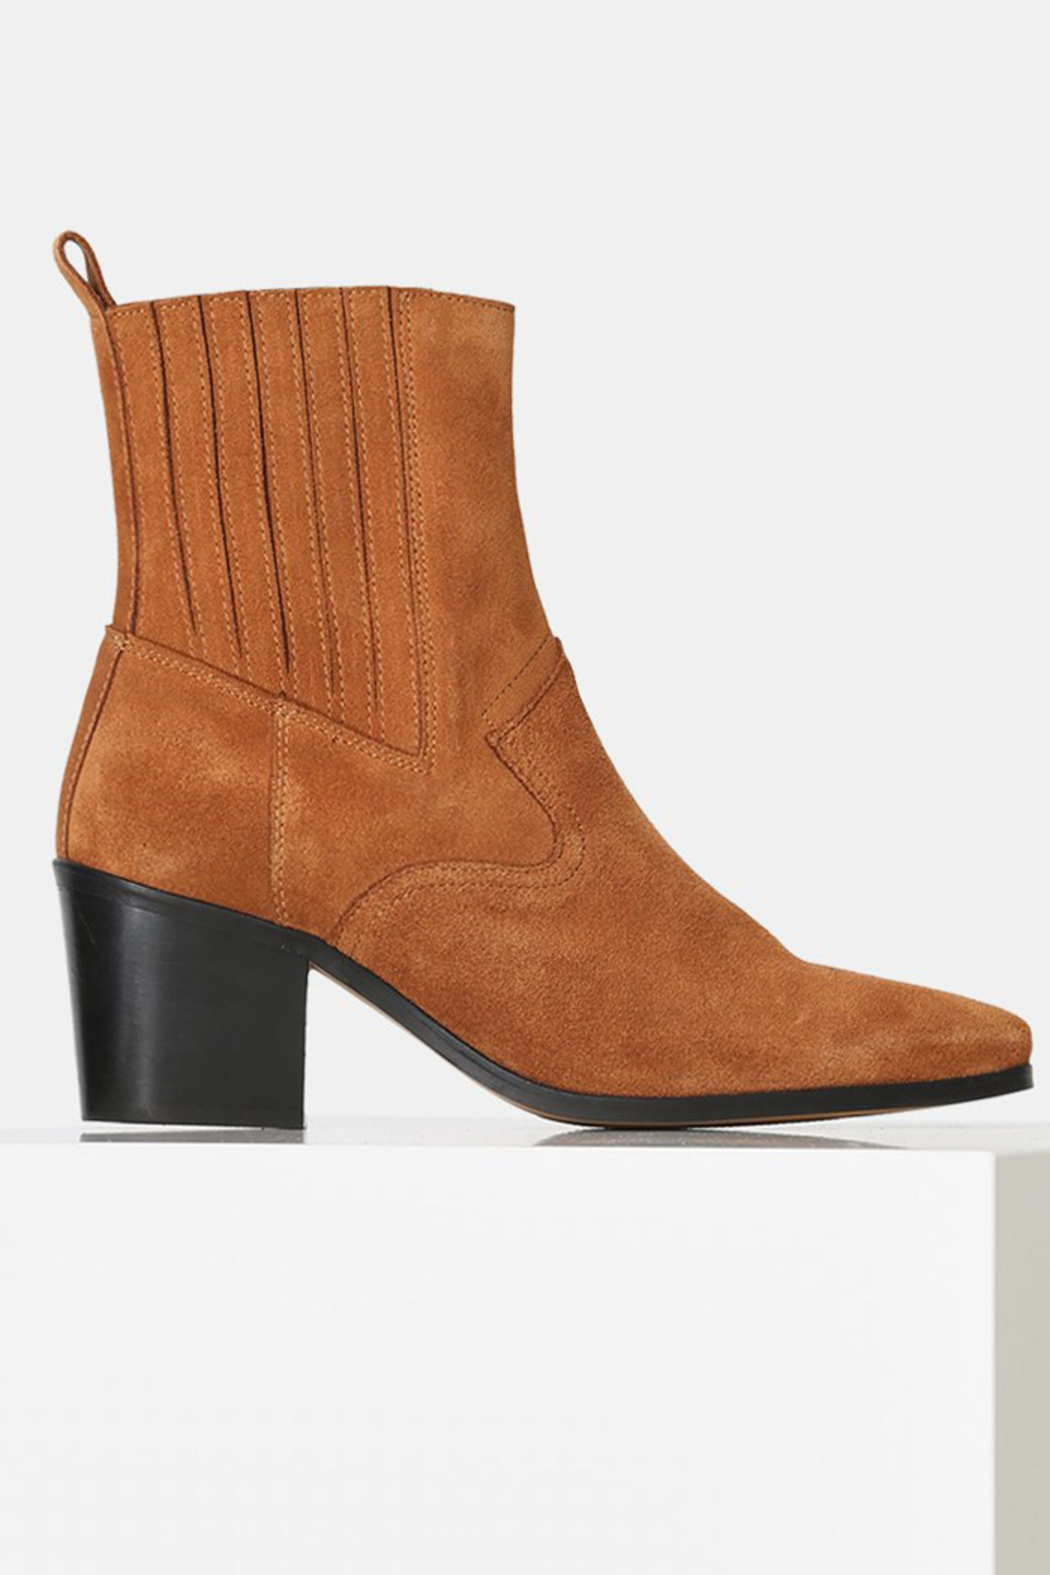 Shoe the Bear BLOCK HEEL SUEDE ANKLE BOOT - Front Cropped Image